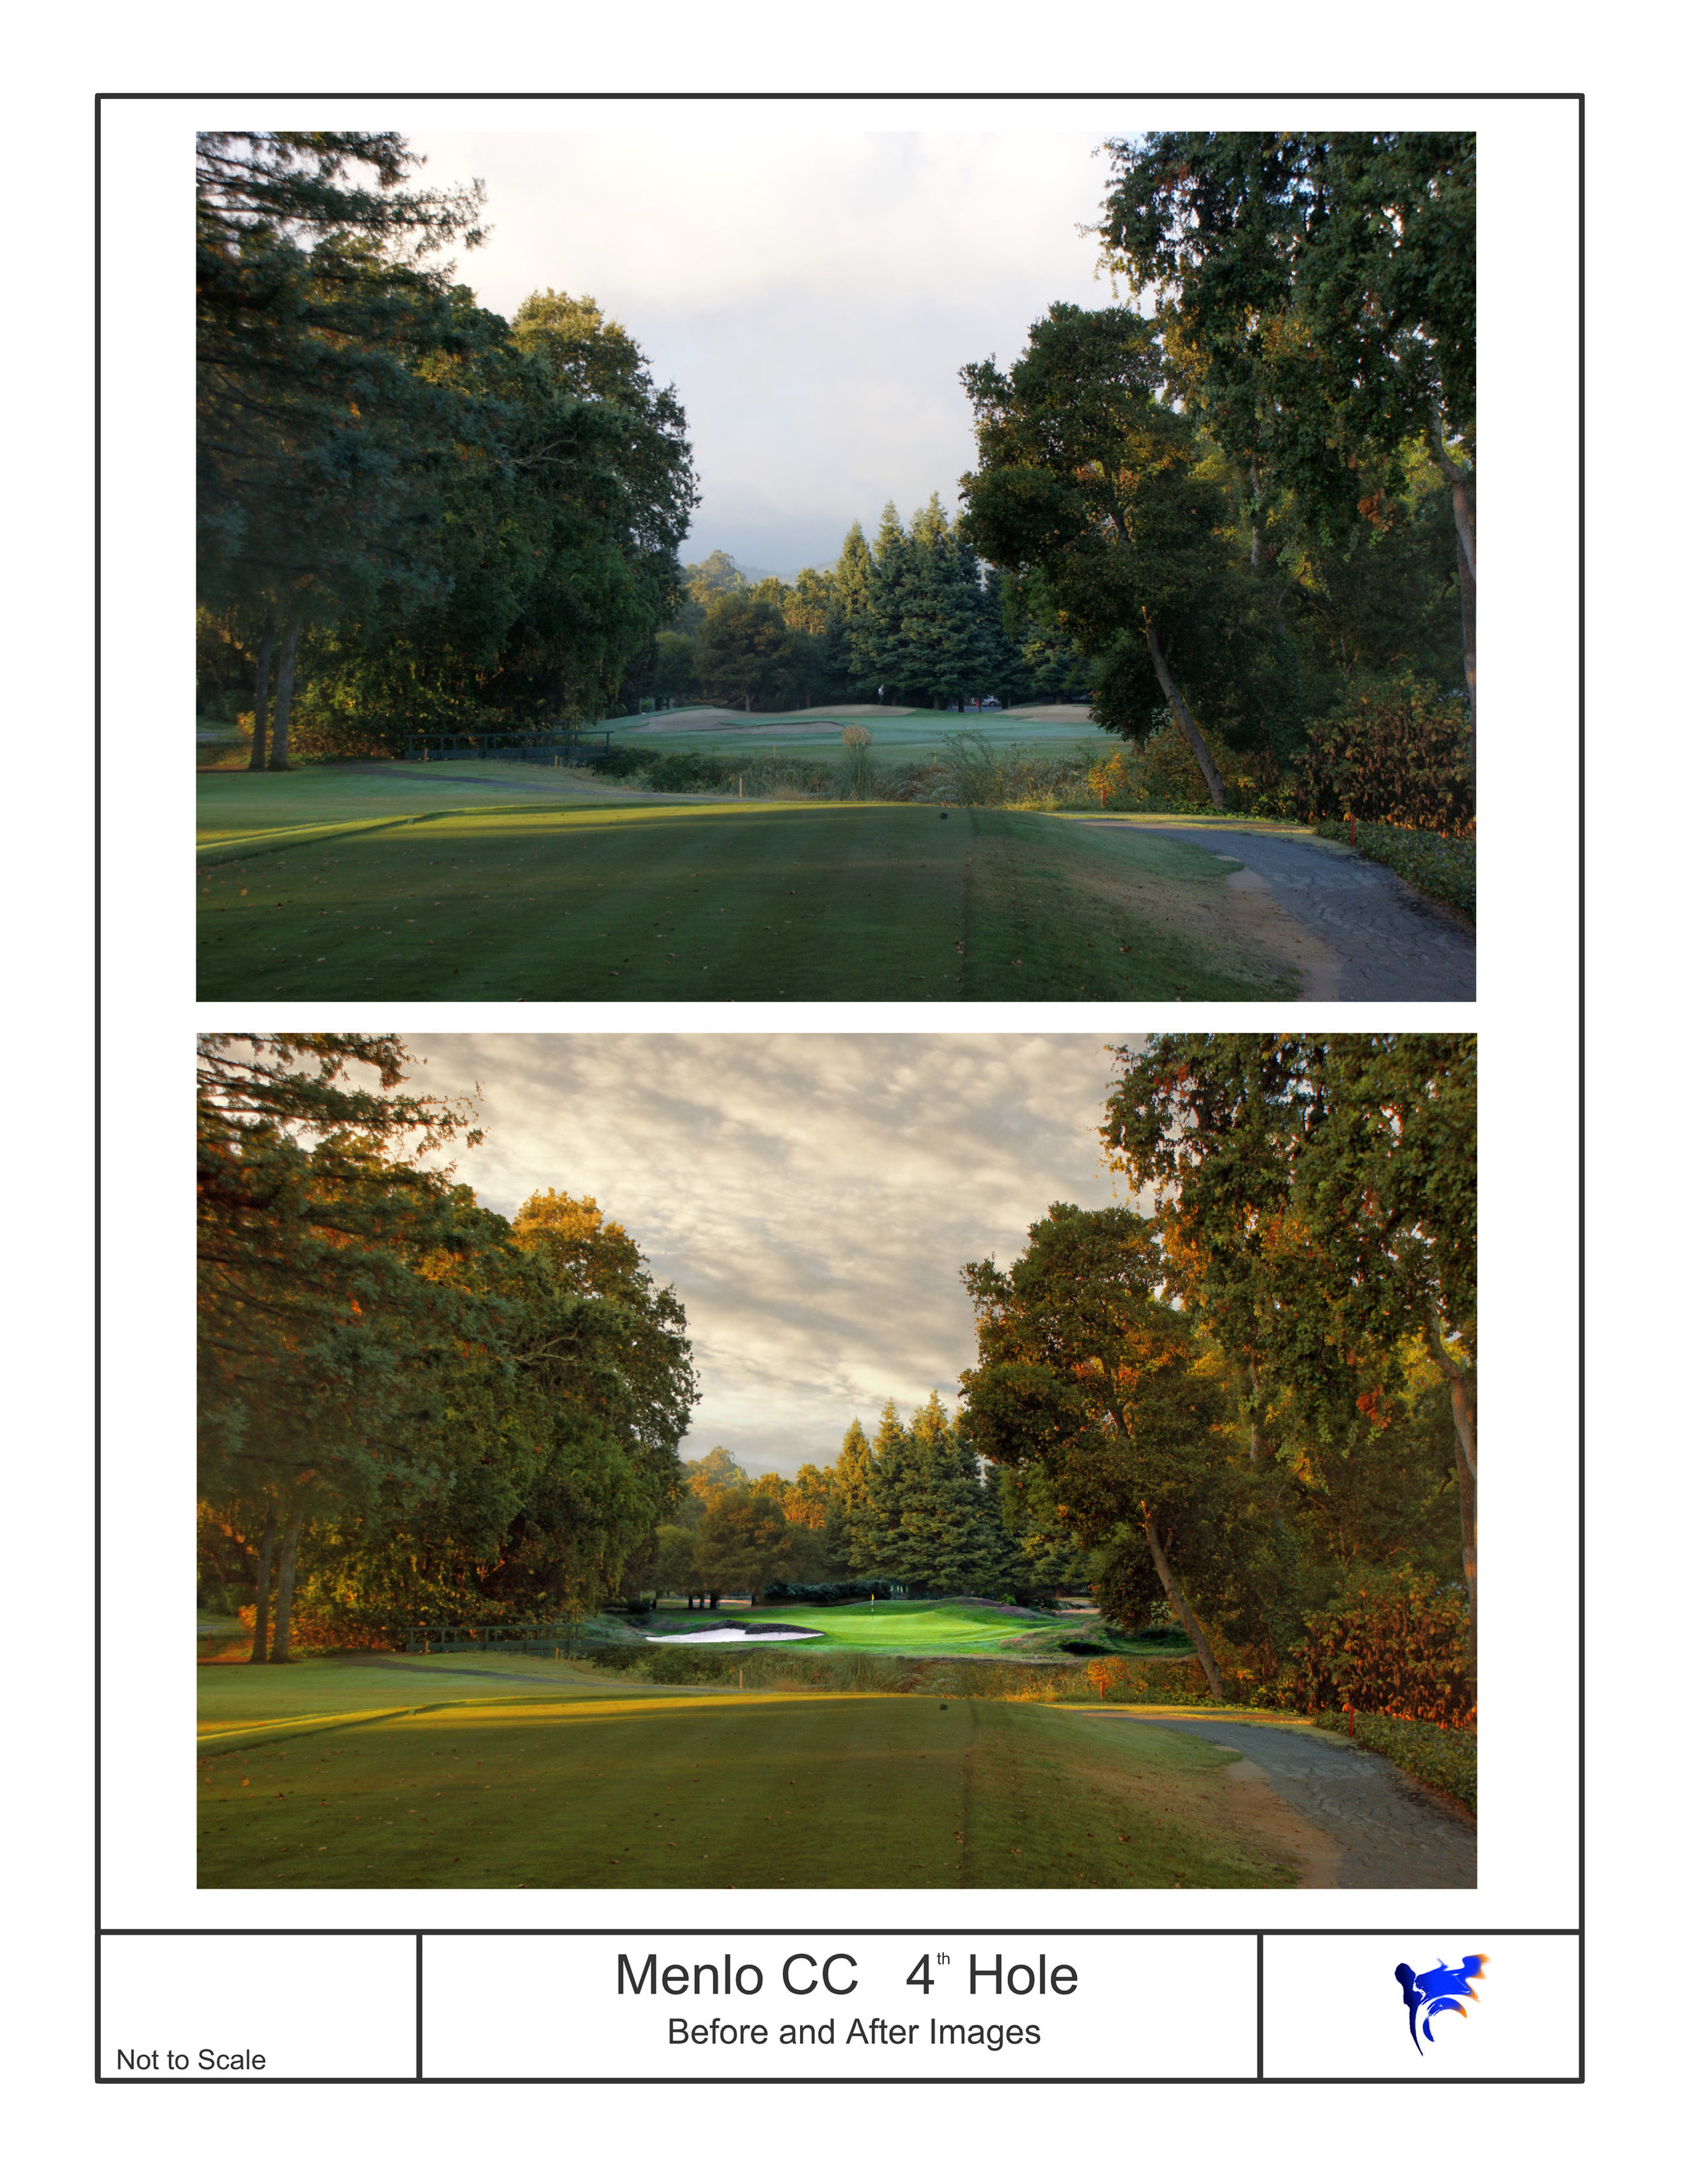 - We use software that allows us to alter photographs of existing golf holes and show how it might look after being completed.